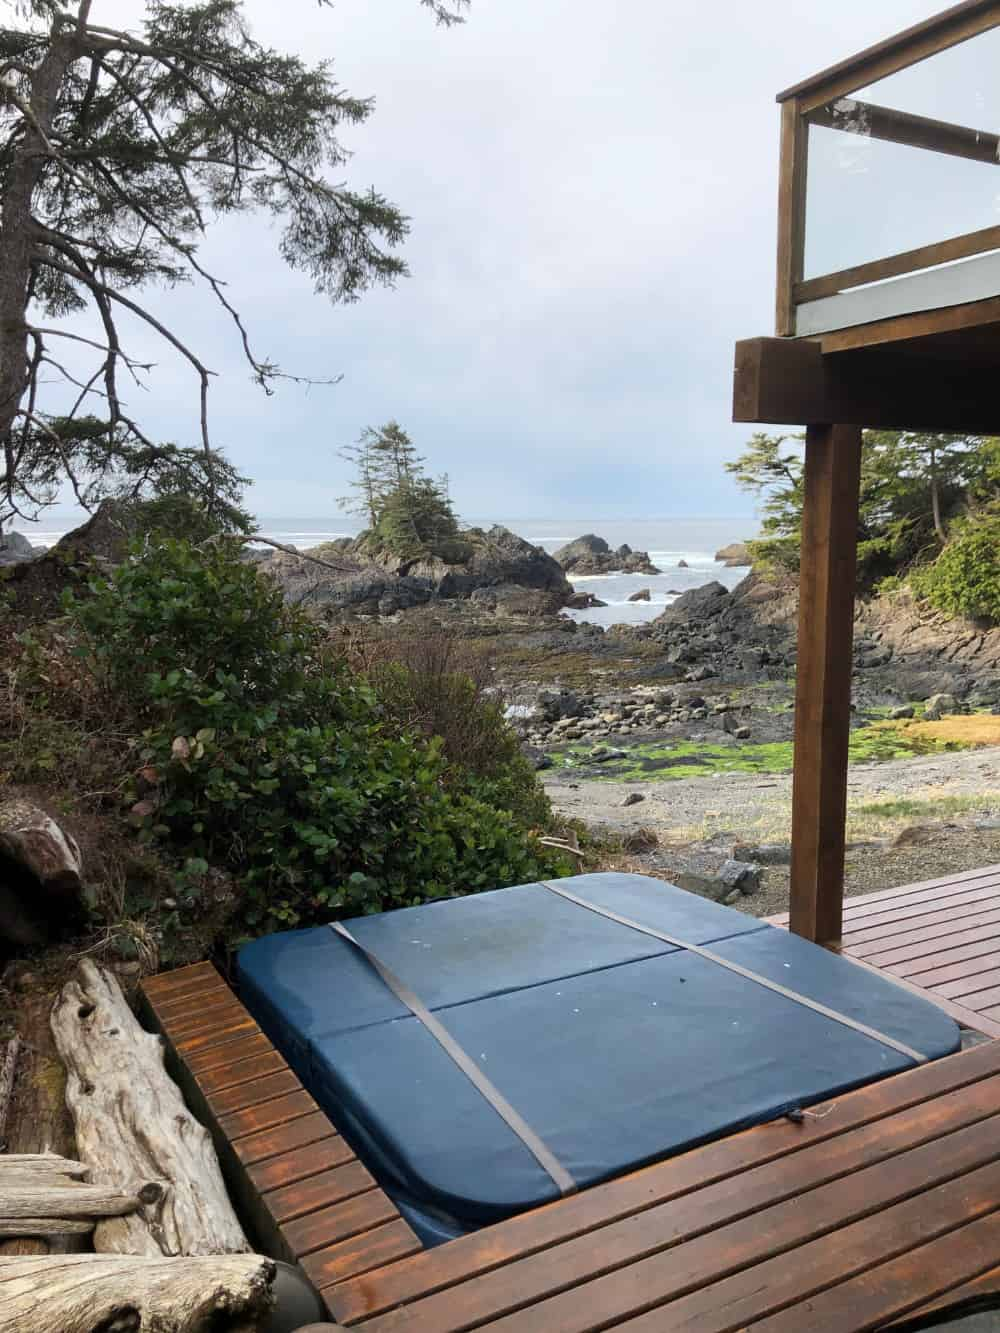 Hot tub on deck overlooking ocean in Ucluelet BC